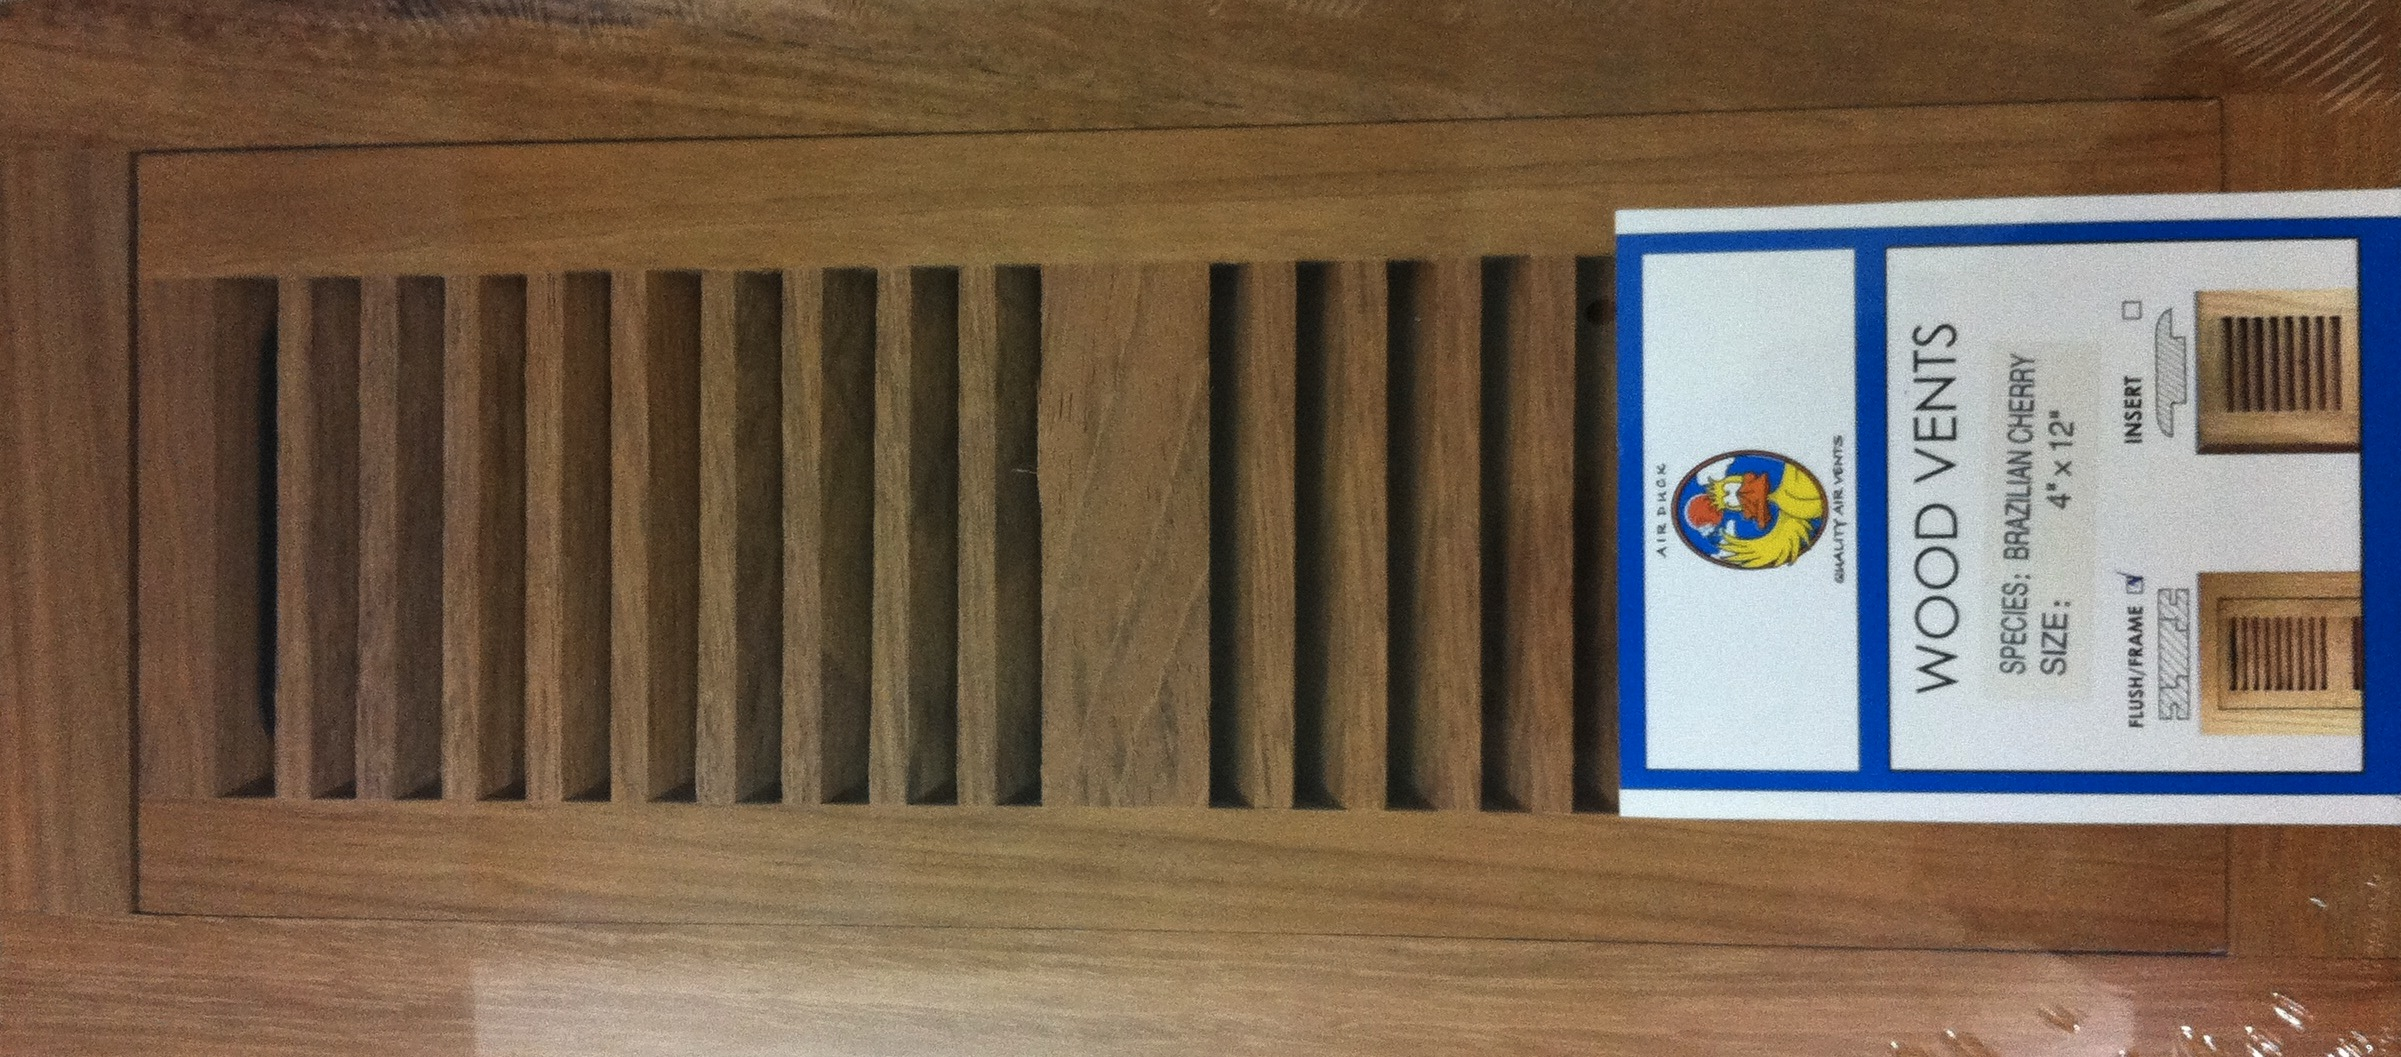 Wood Floor Vent Covers Floor Registers Floor Grills Floor Grilles